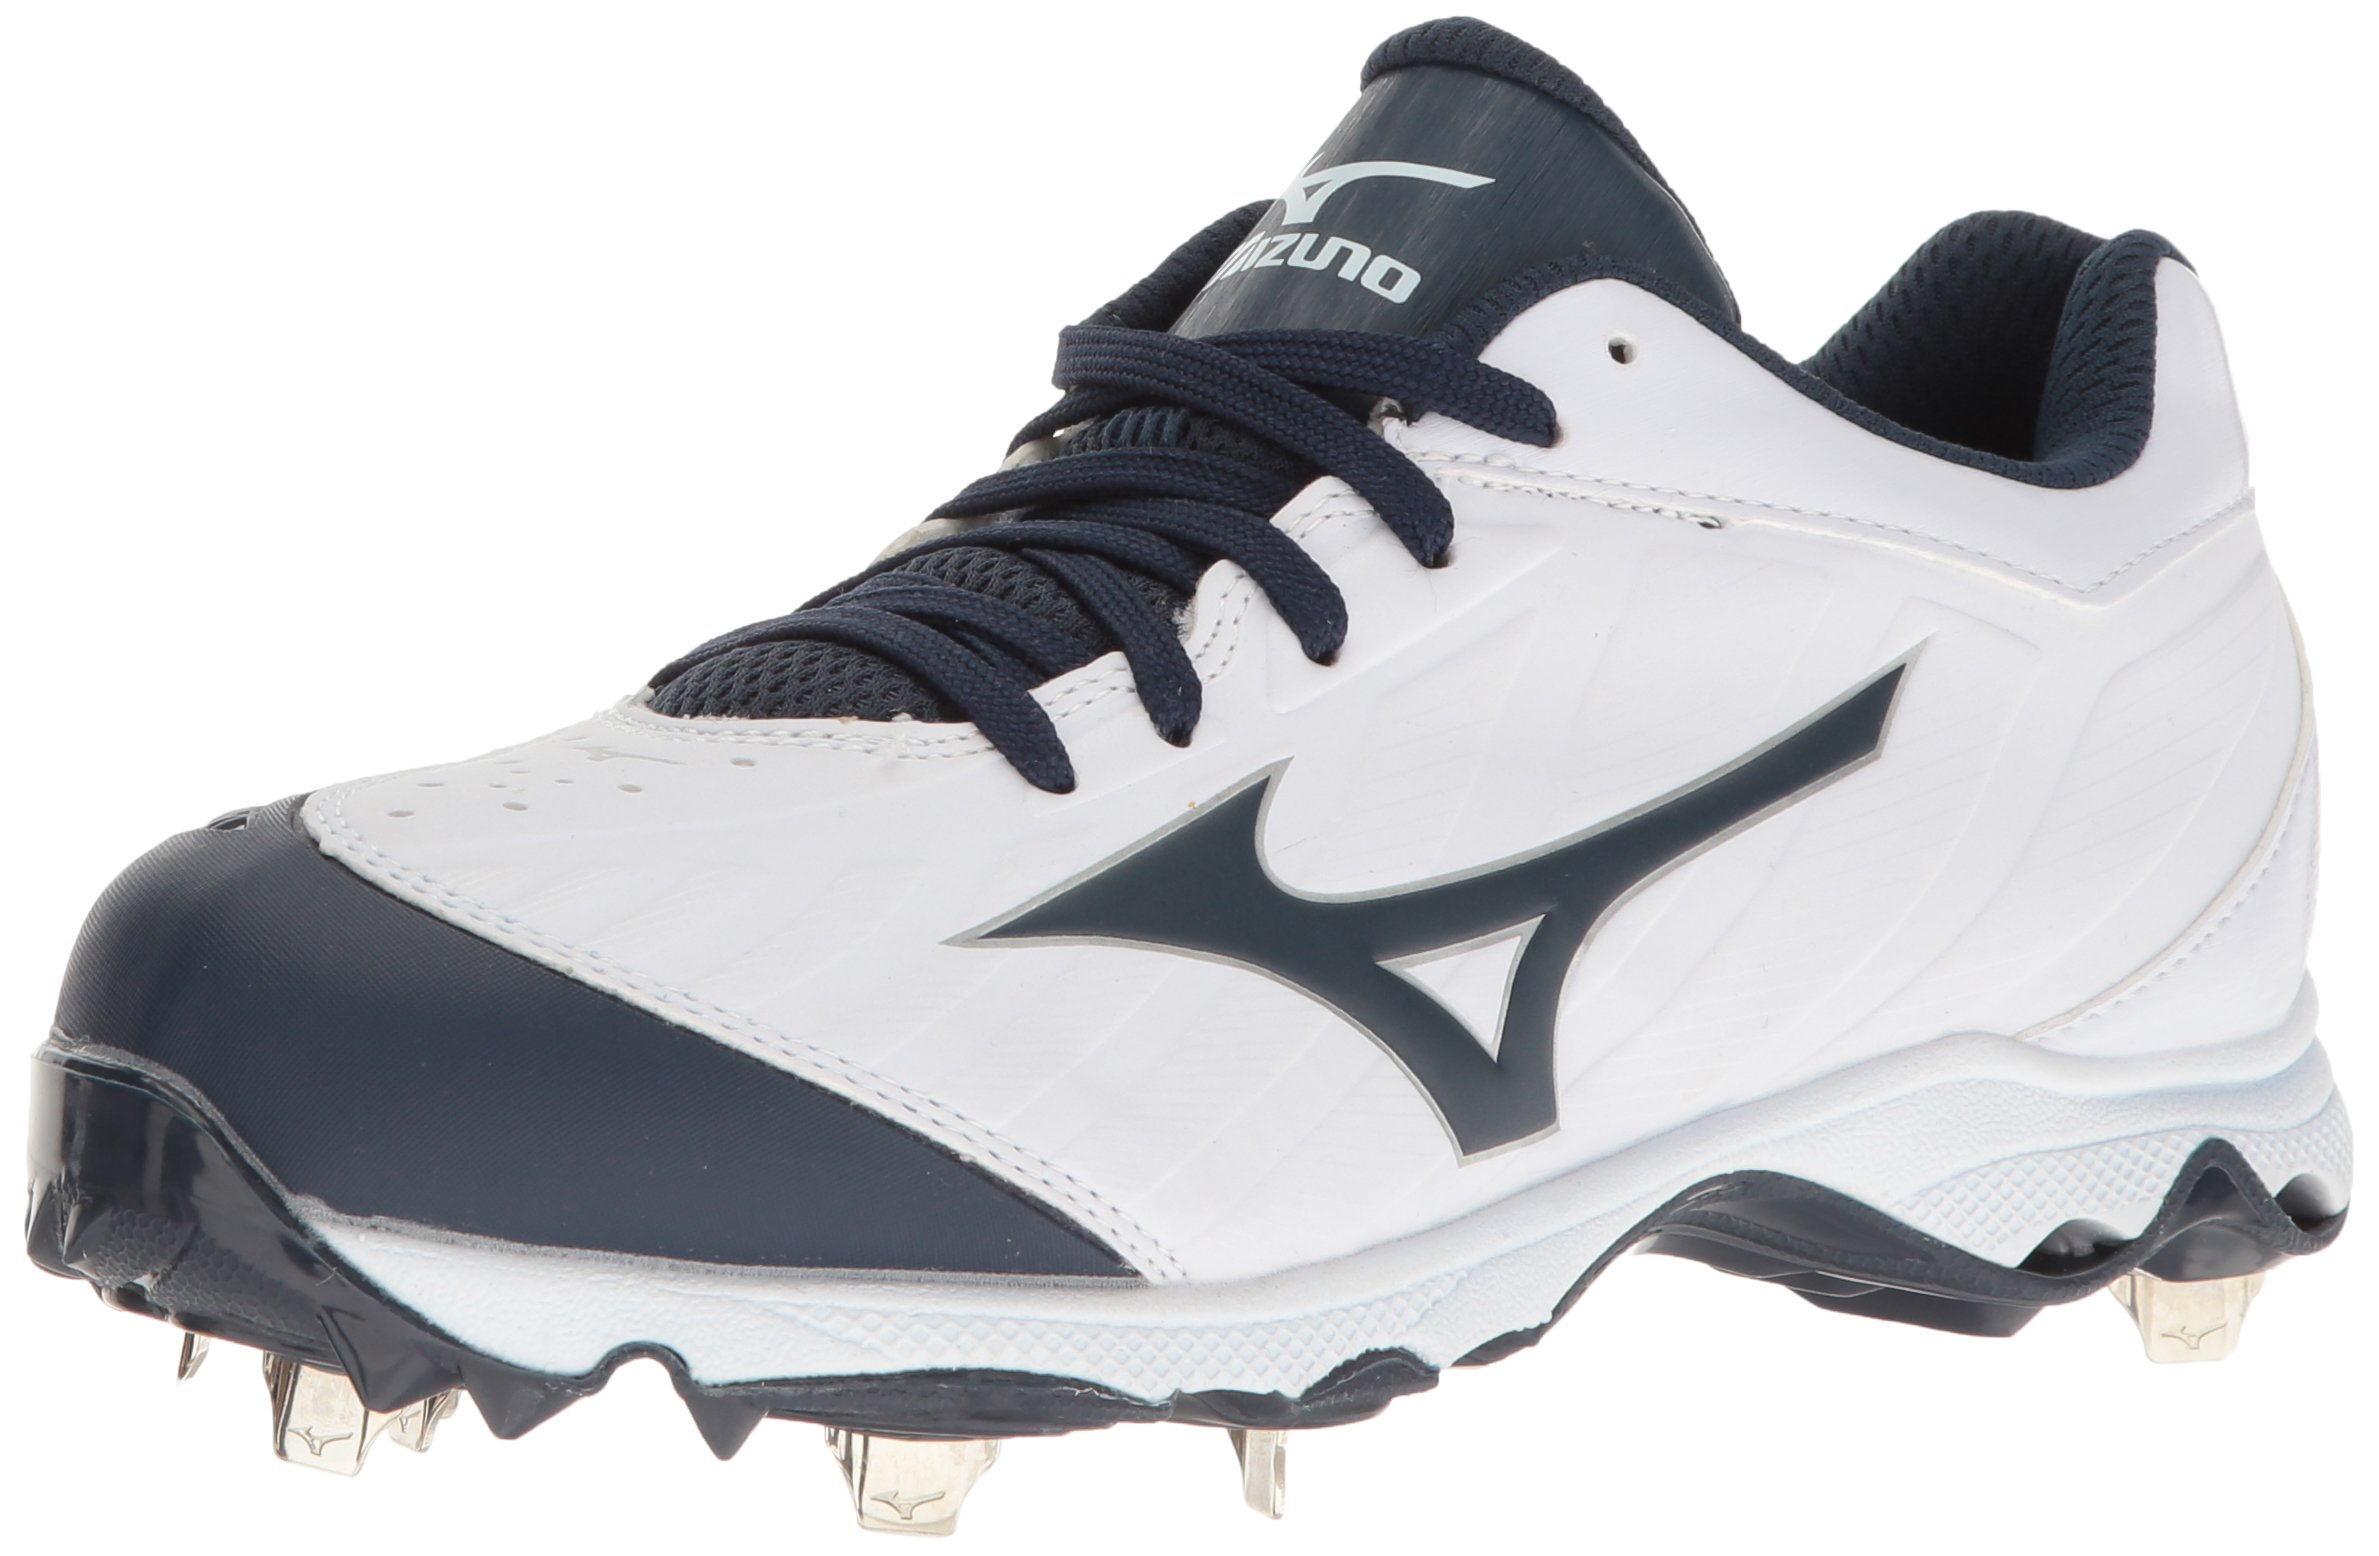 Mizuno Women's 9-Spike Advanced Sweep 3 Softball Shoe, White-Navy, 6.5 D US